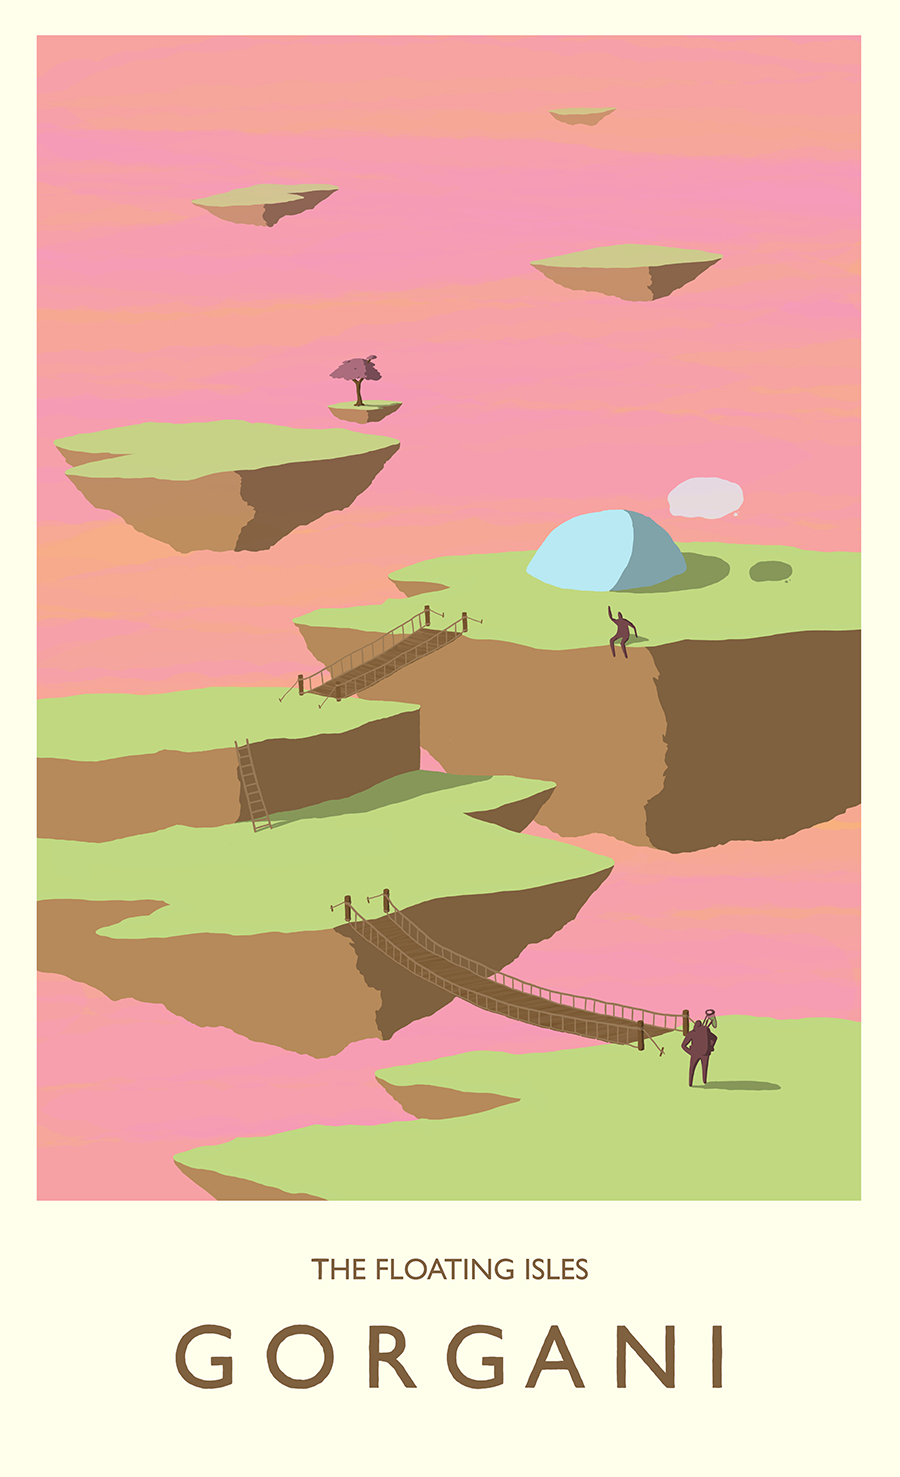 leeds illustration illustrator andy carter space travel poster planet with floating islands